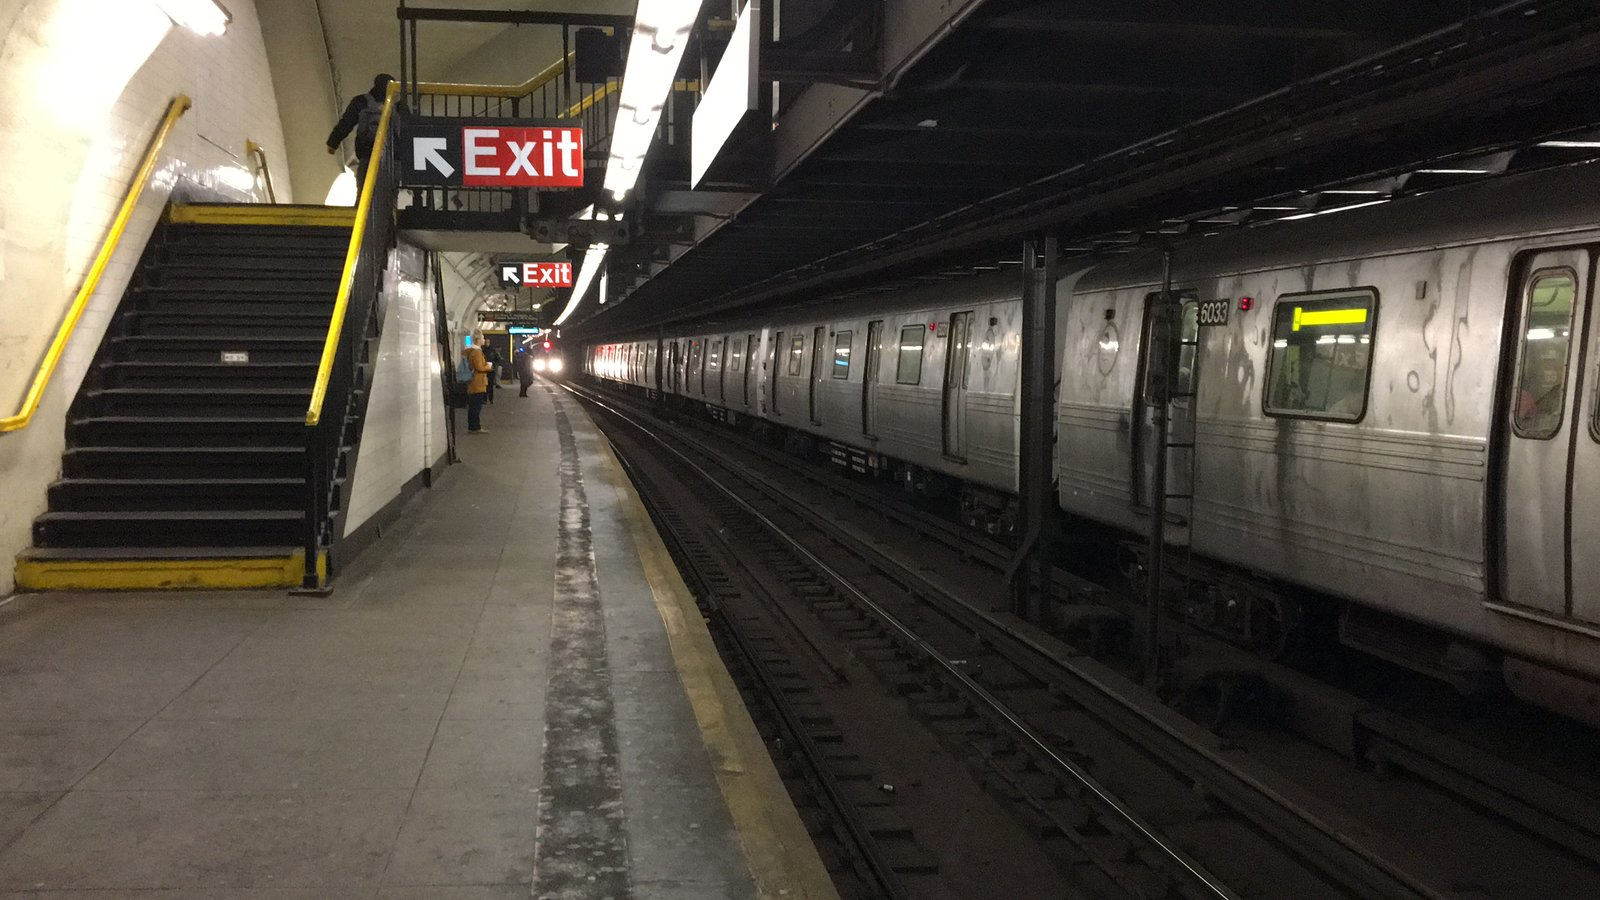 Two A Trains at 181 St